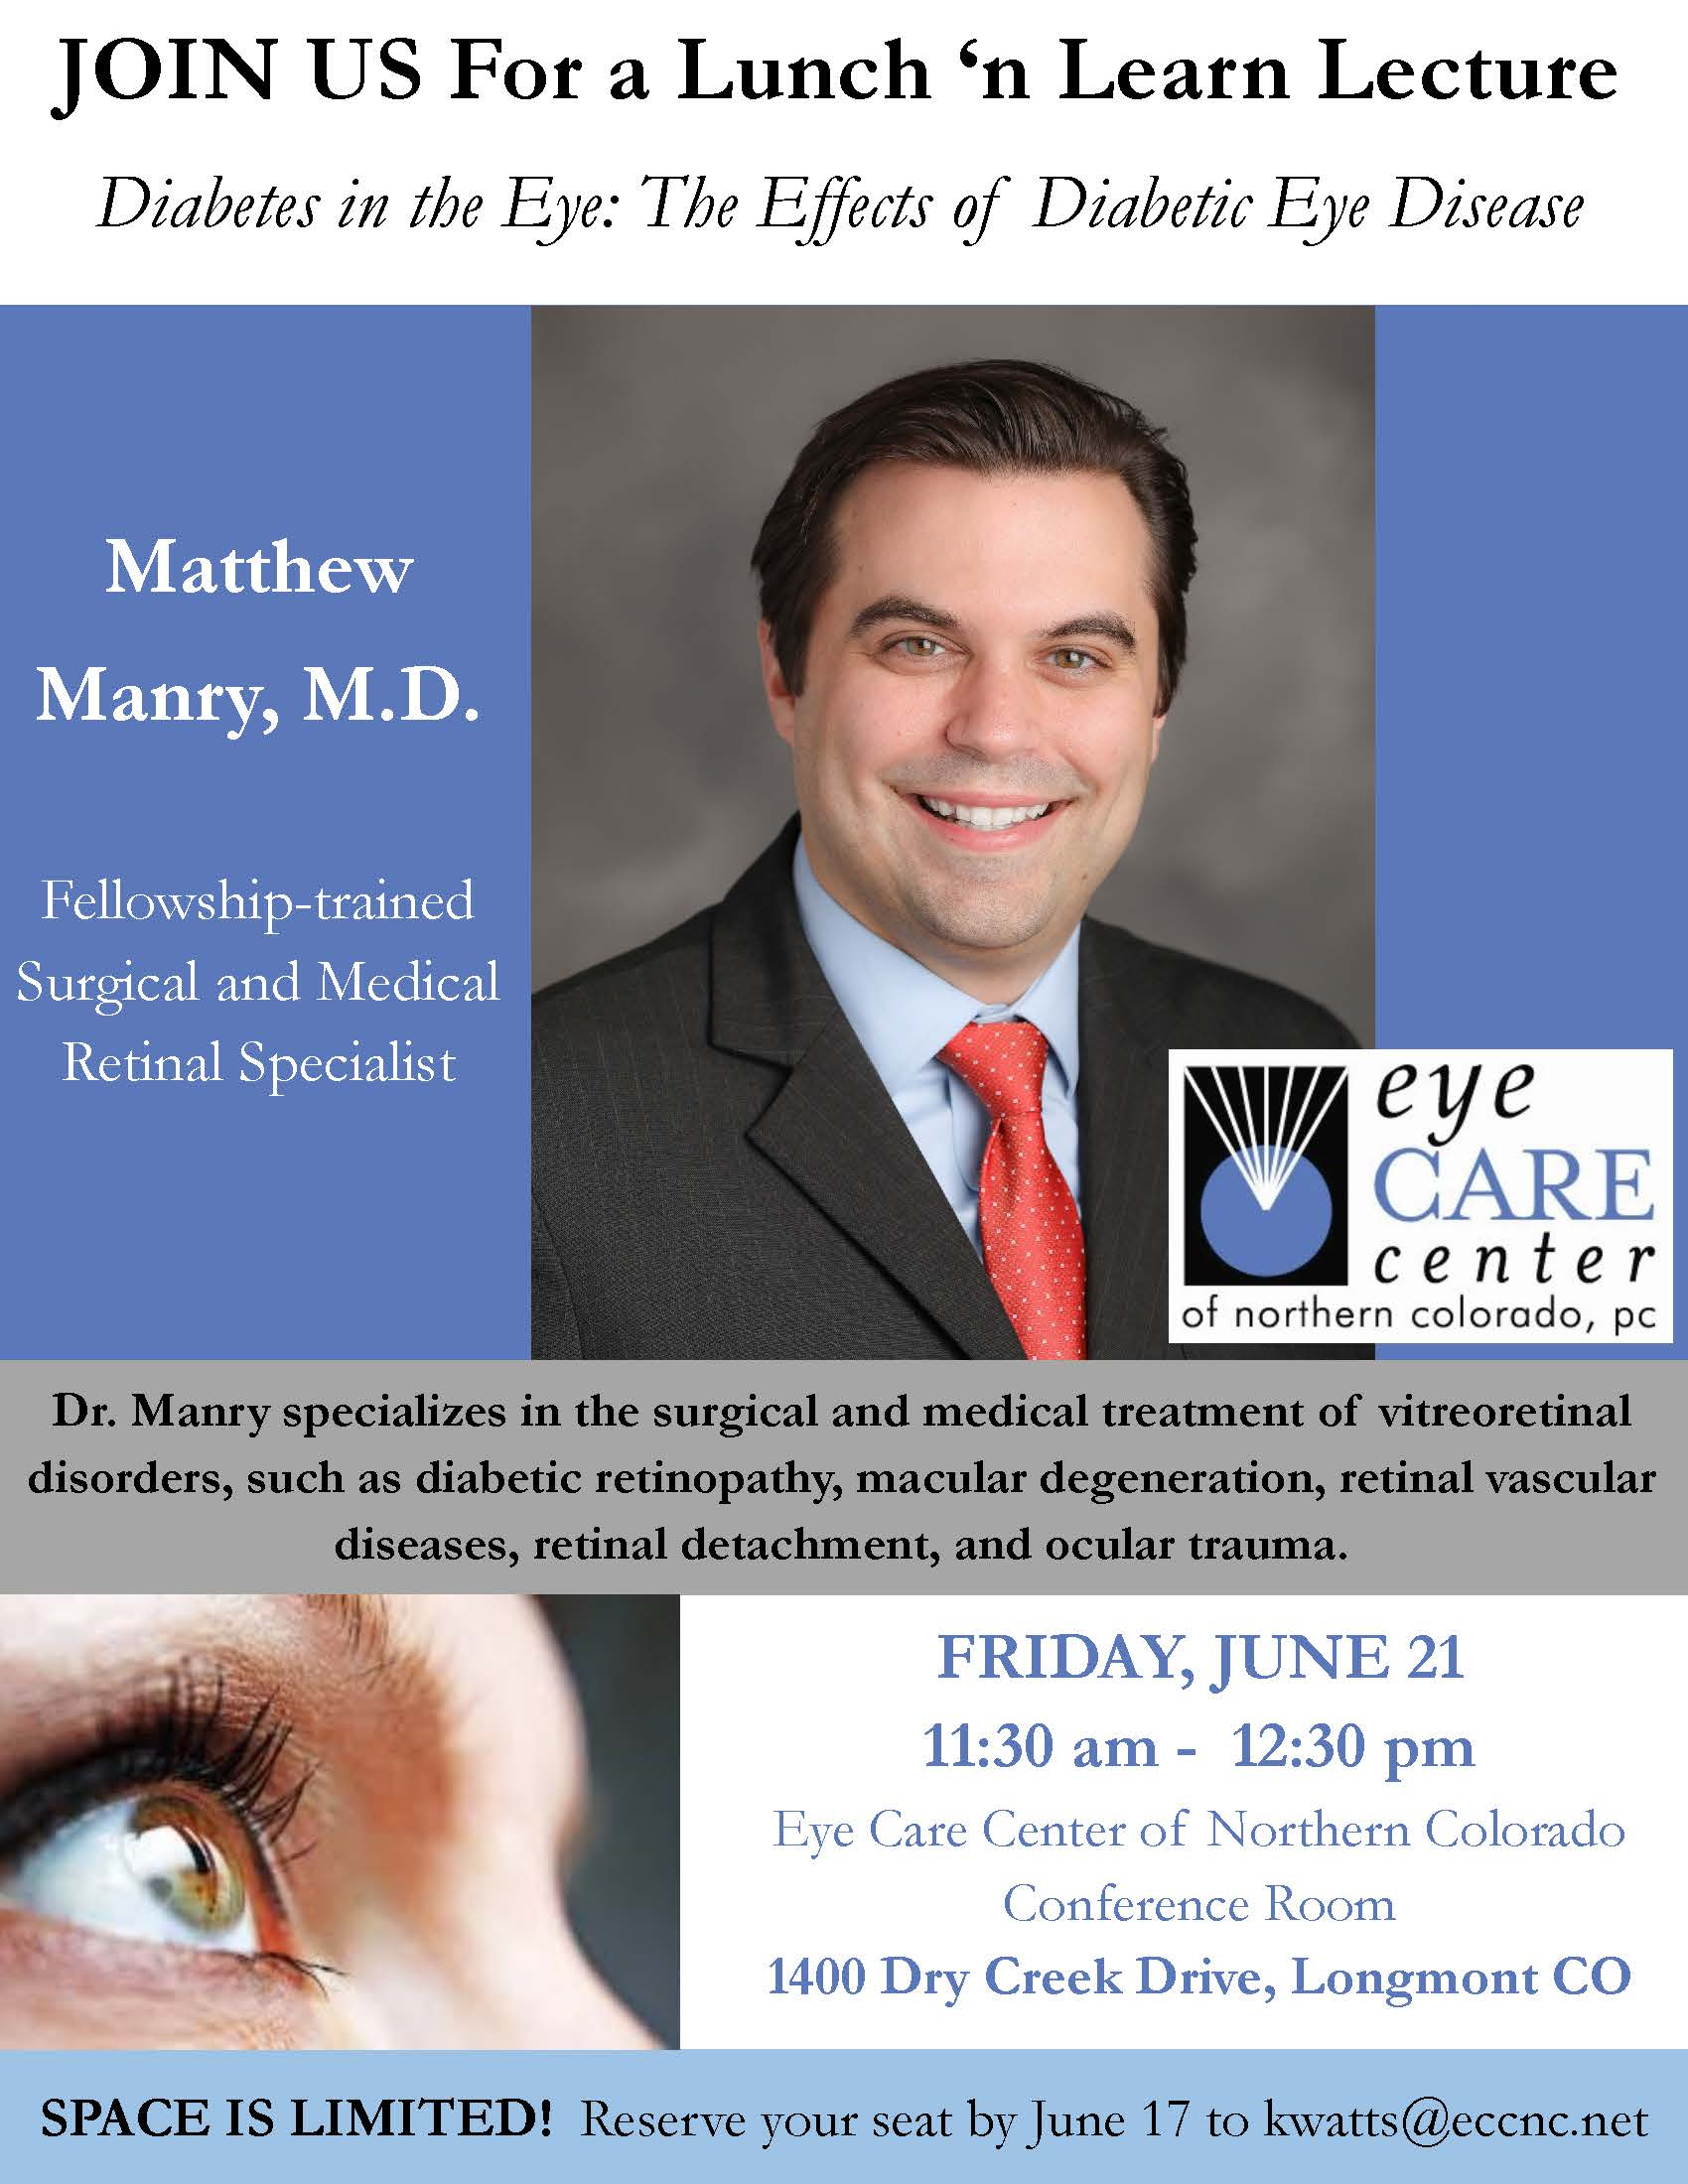 Boulder Eye Care & Surgery Center Doctors June 2019 Diabetes in the Eye - Skin Care / Cosmetic Options Consultations